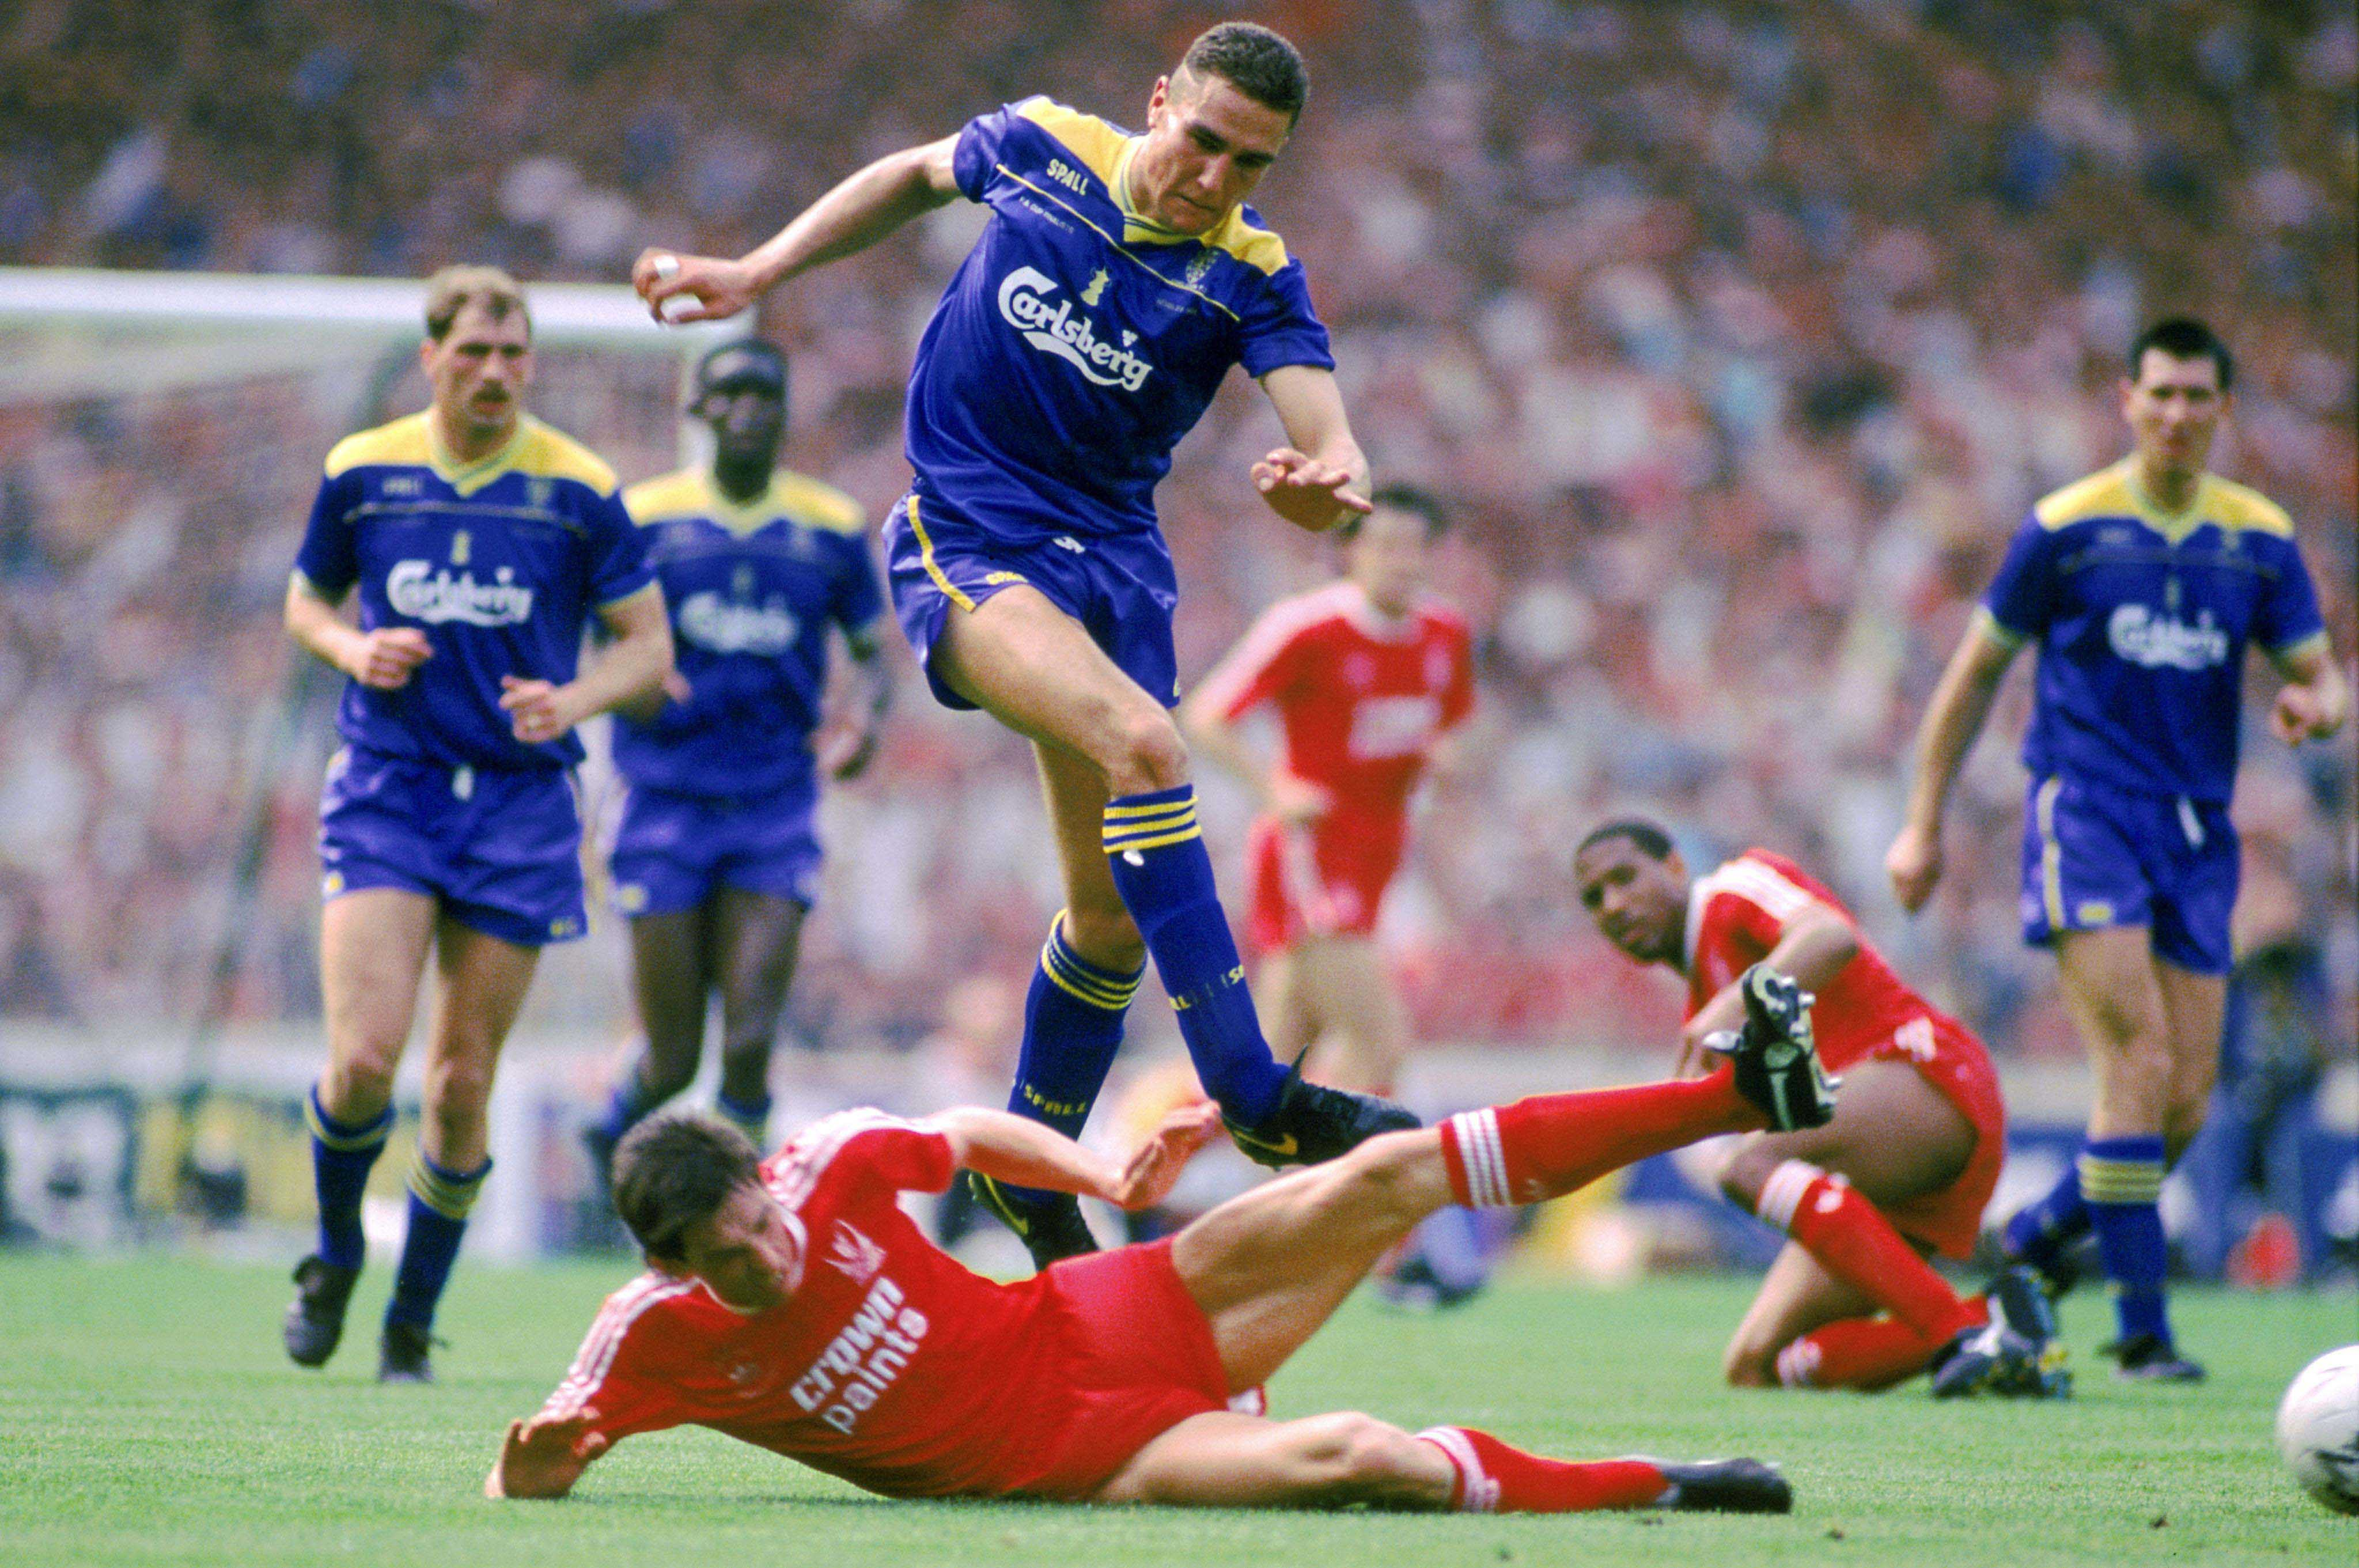 AFC WIMBLEDON v LIVERPOOL: THE FA CUP GHOSTS OF 1988